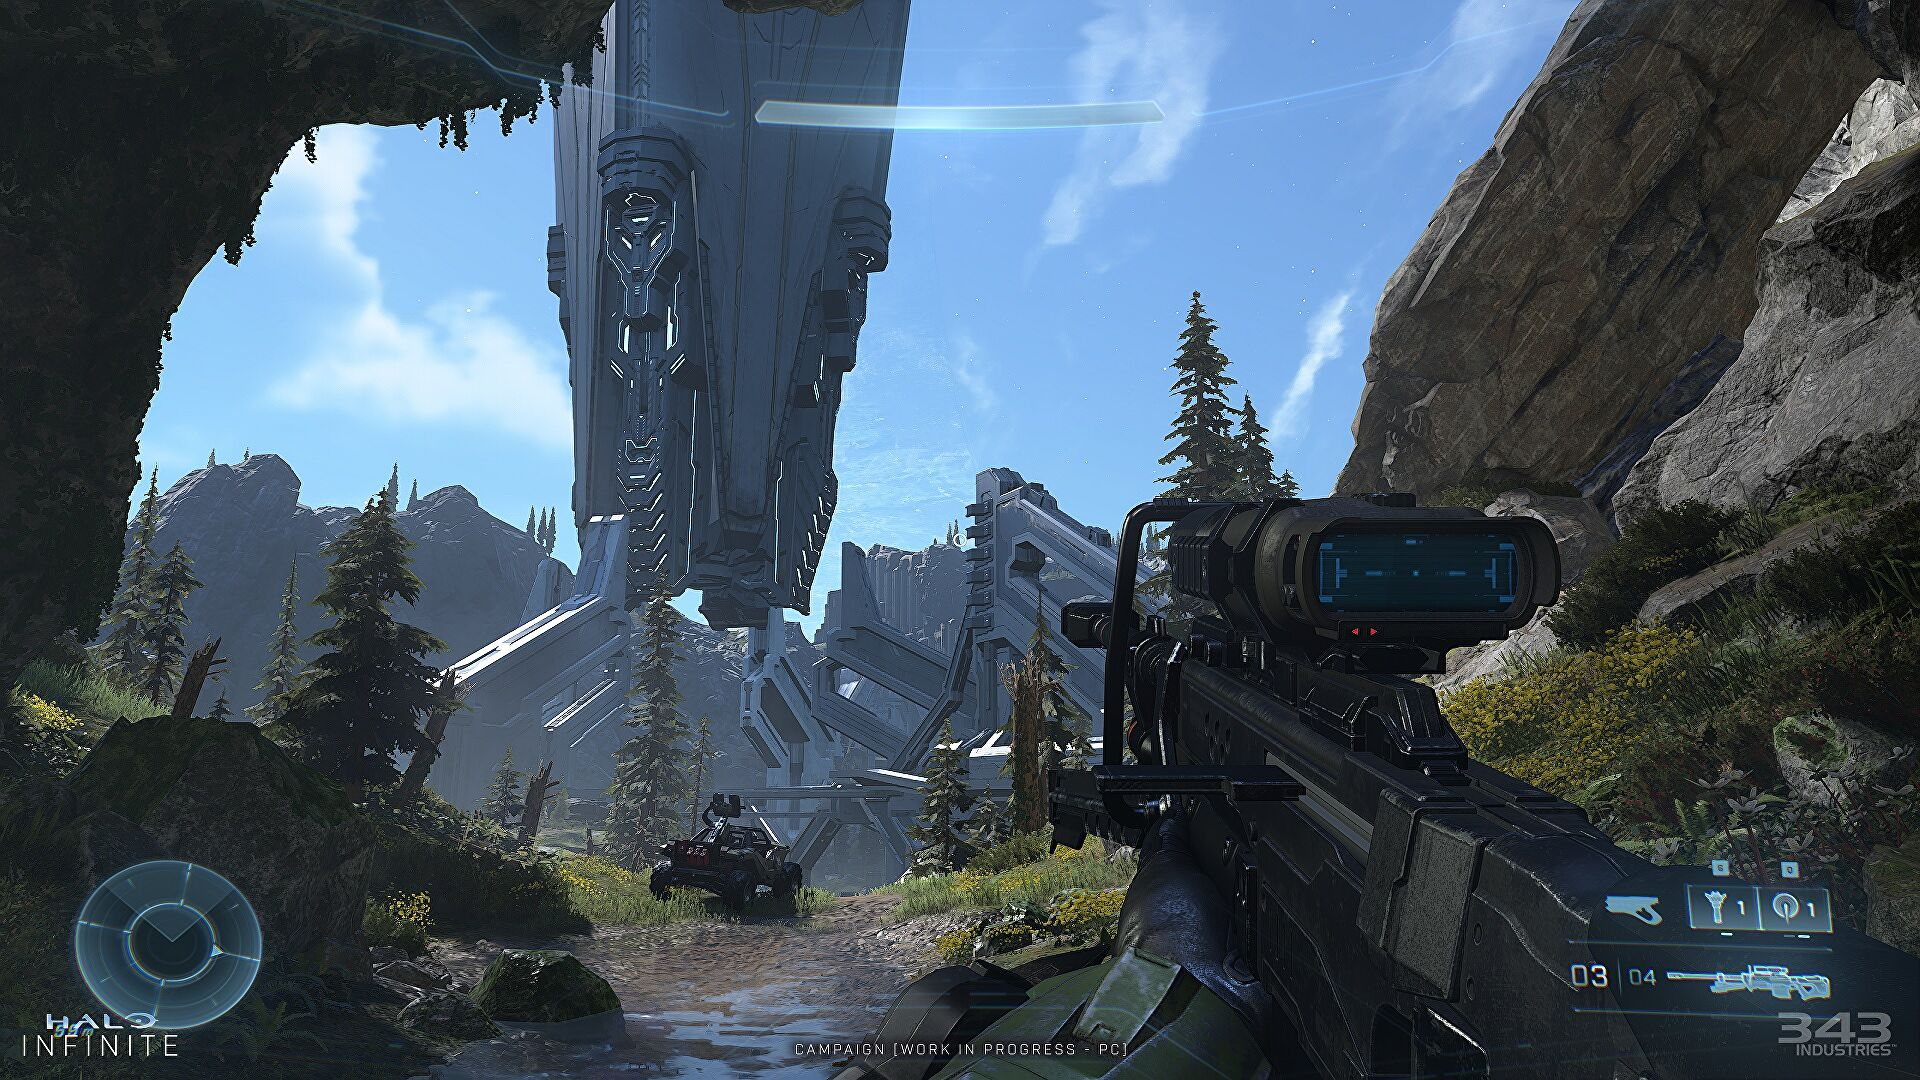 Halo Infinite developers call it a